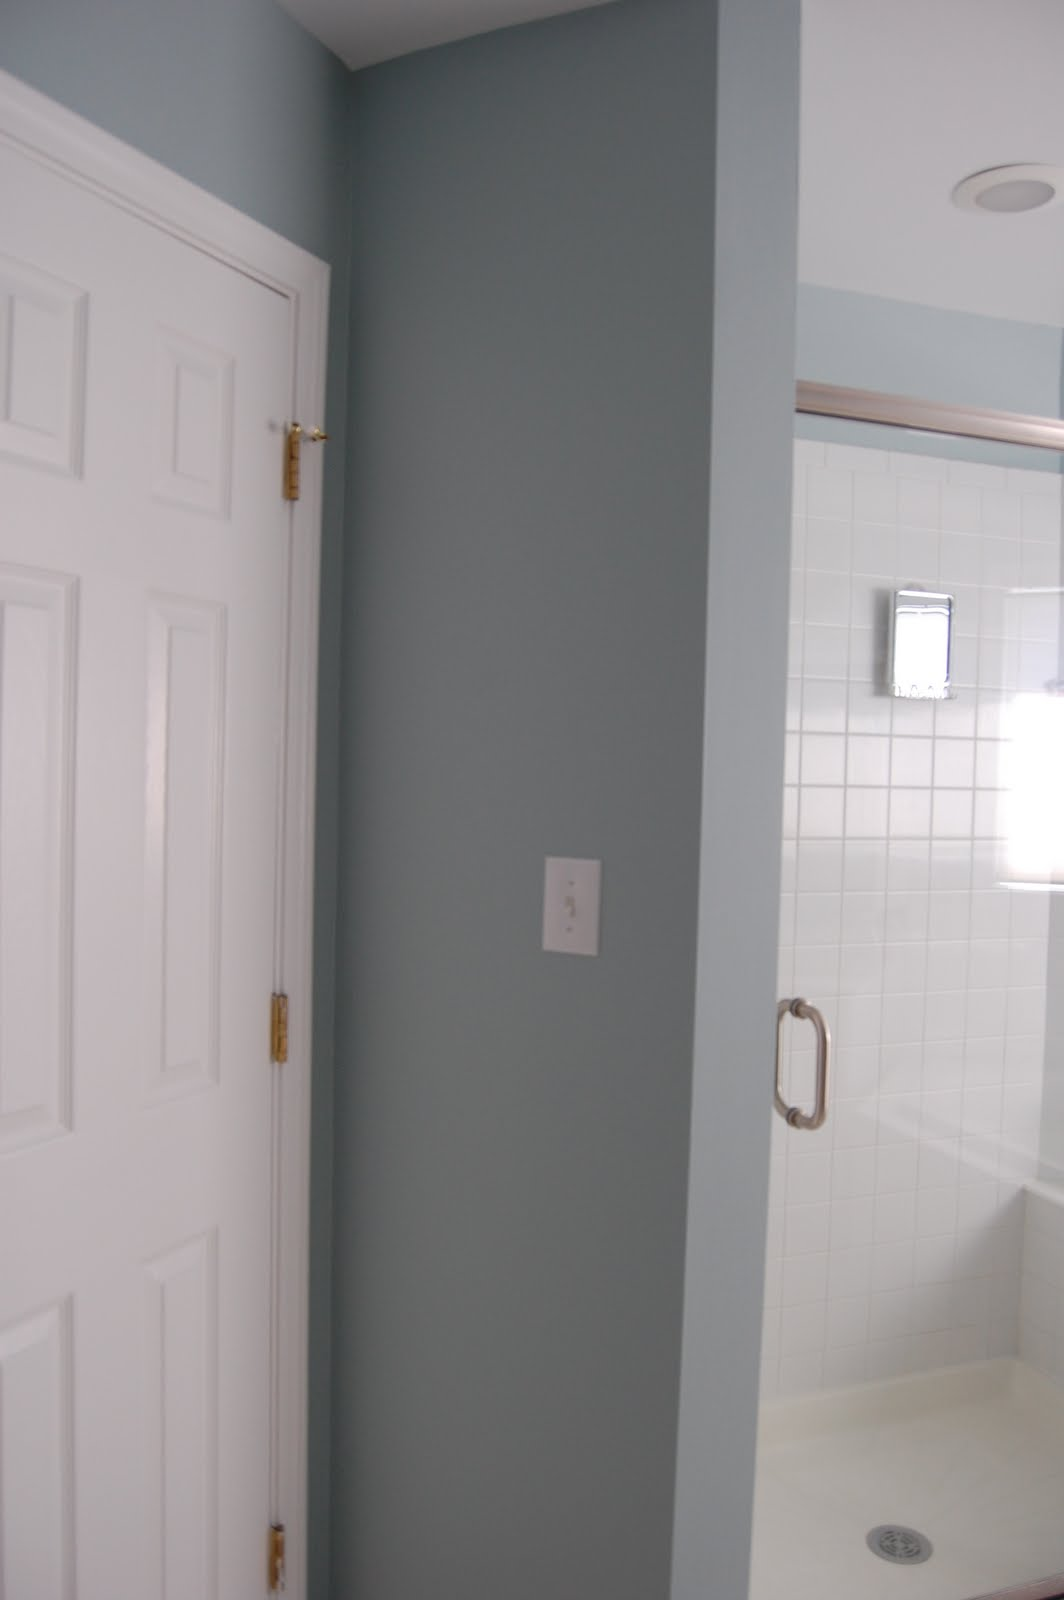 Kicking it in the suburbs master bath reno part 7 paint for Benjamin moore eco spec paint